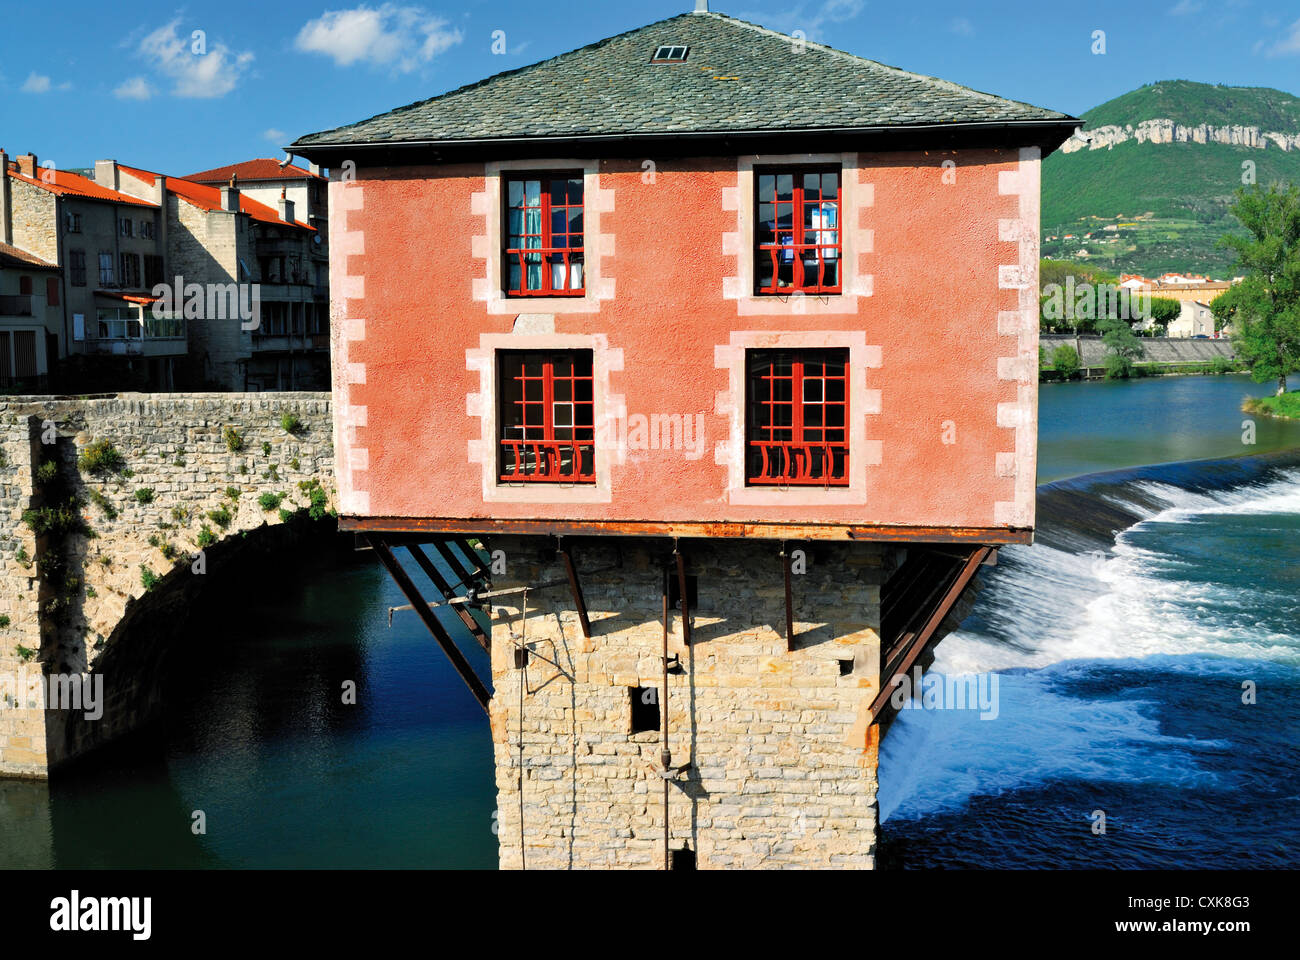 France, Midi-Pyrenees: River house over river Tarn in Millau - Stock Image